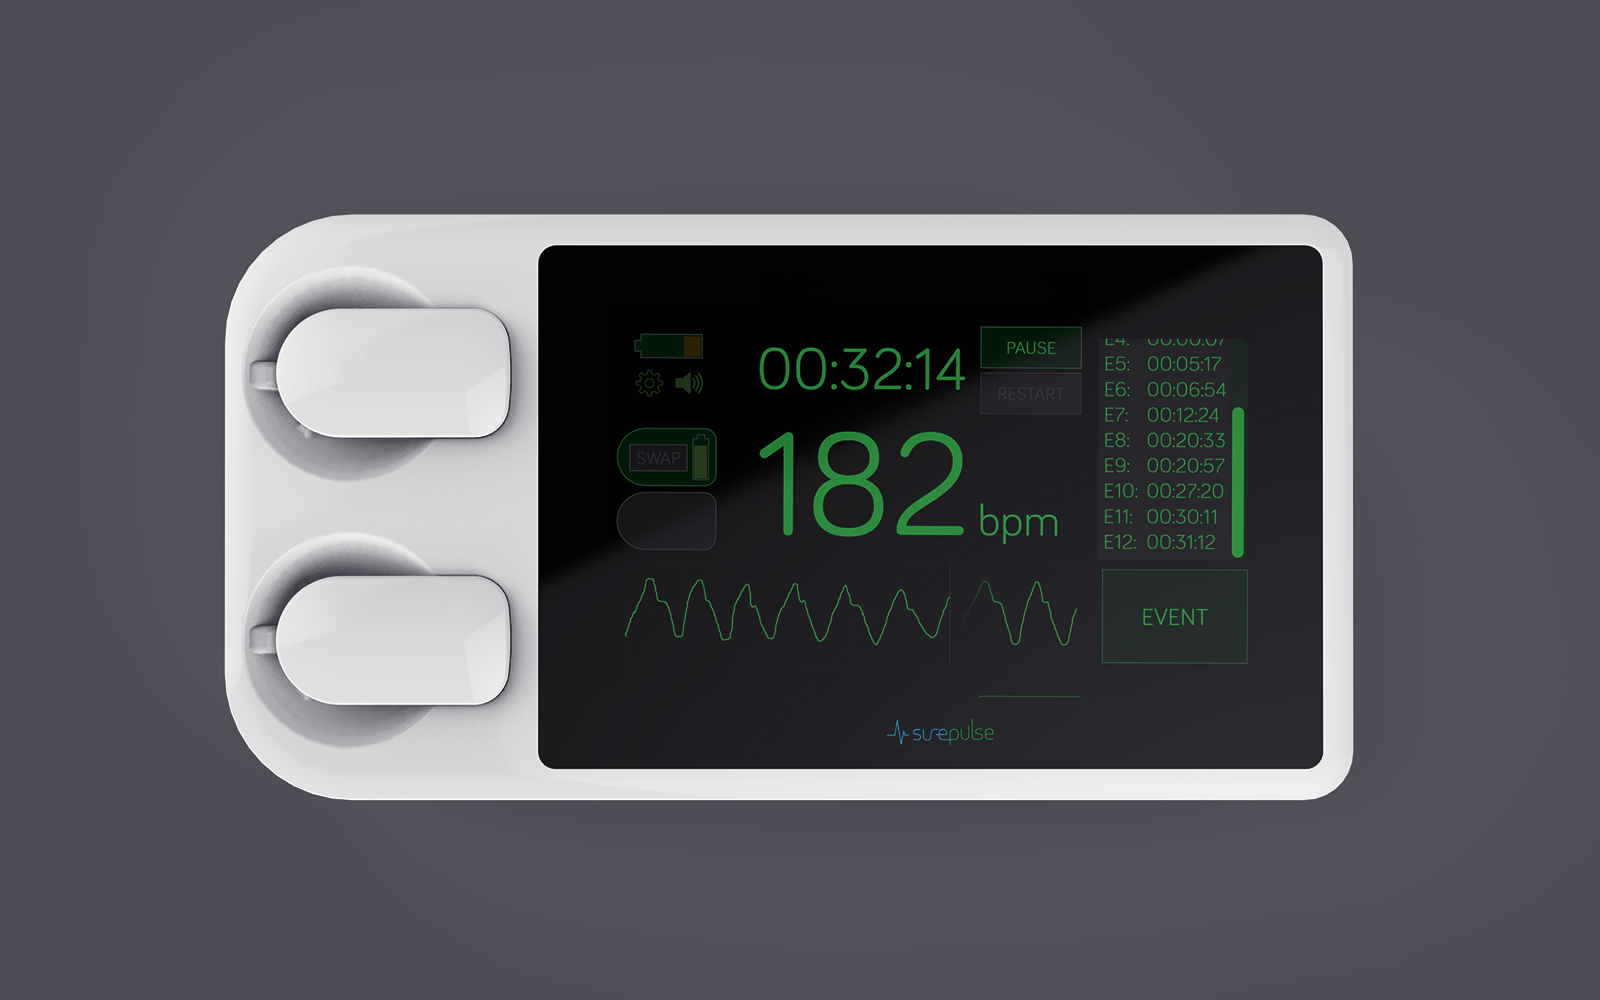 SurePulse - Newborn Baby Heart Rate Monitor User Interface